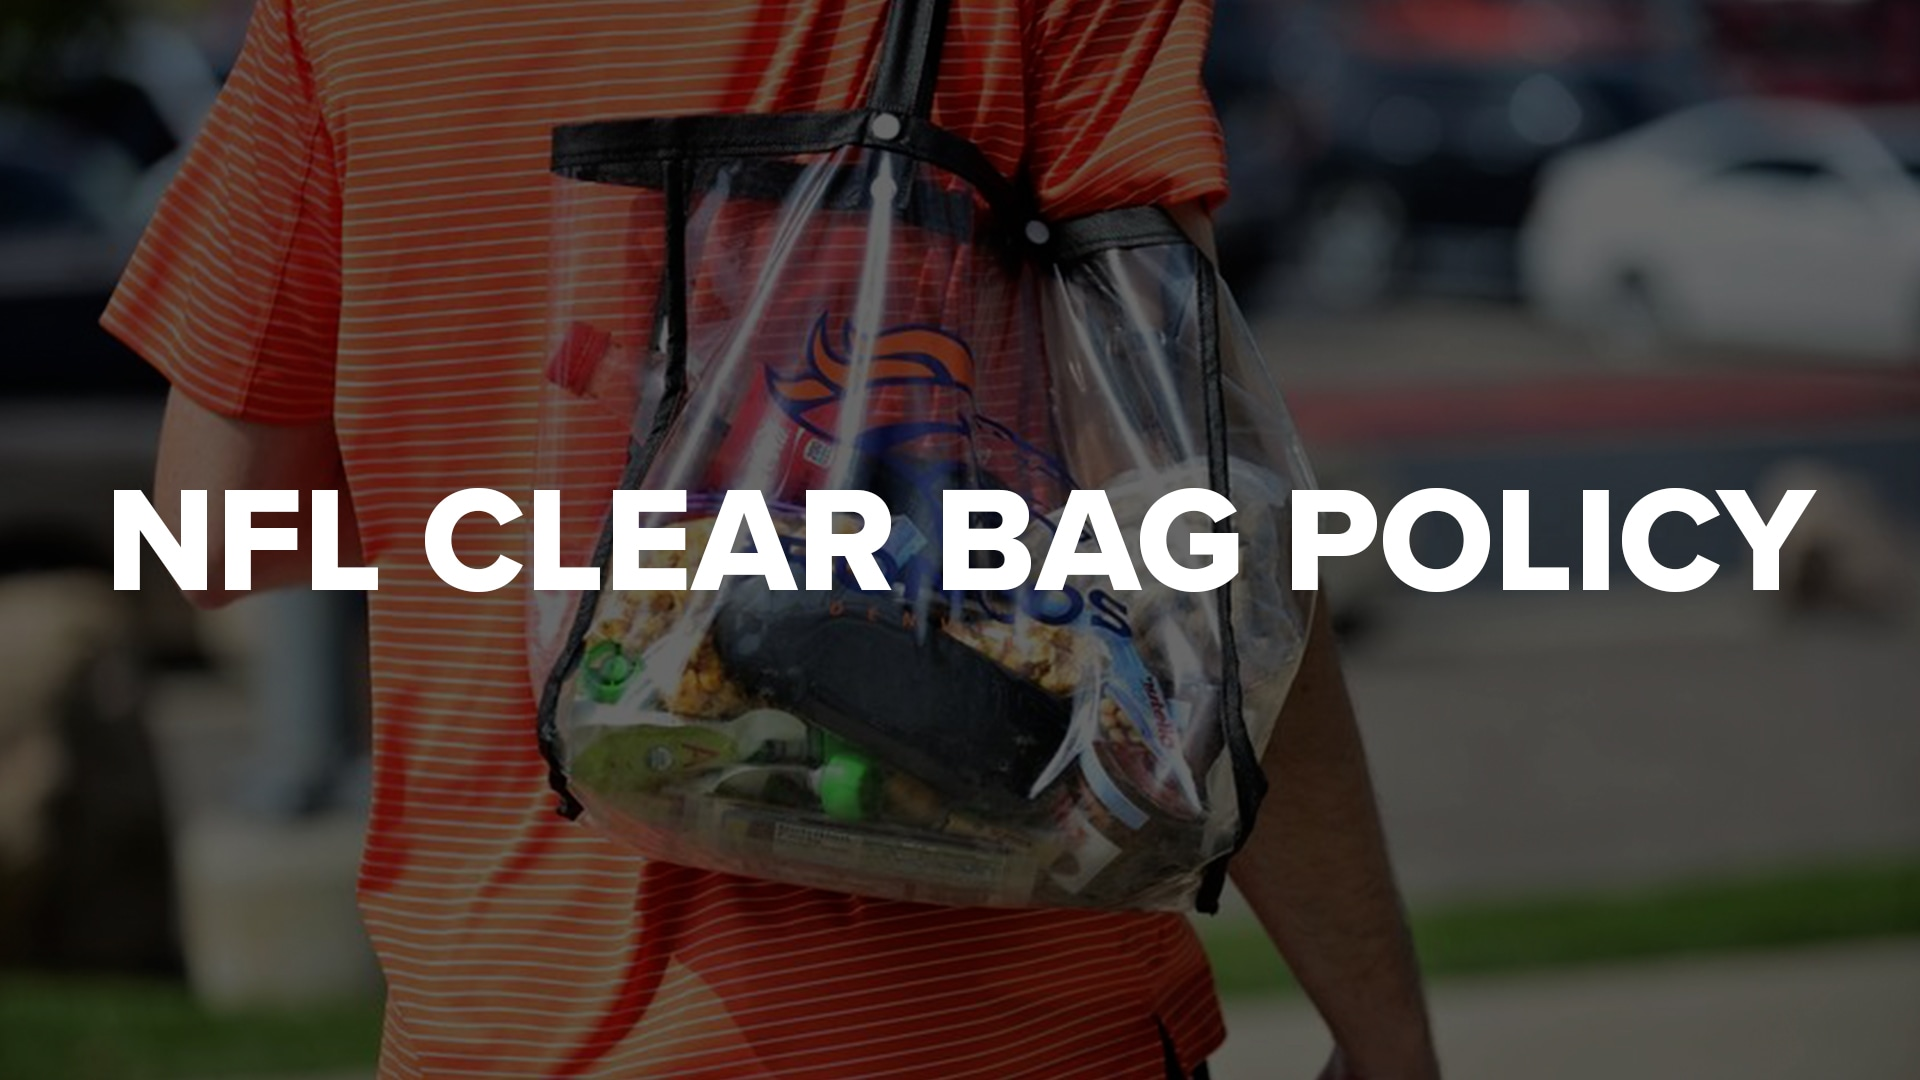 NFL Clear Bag Policy